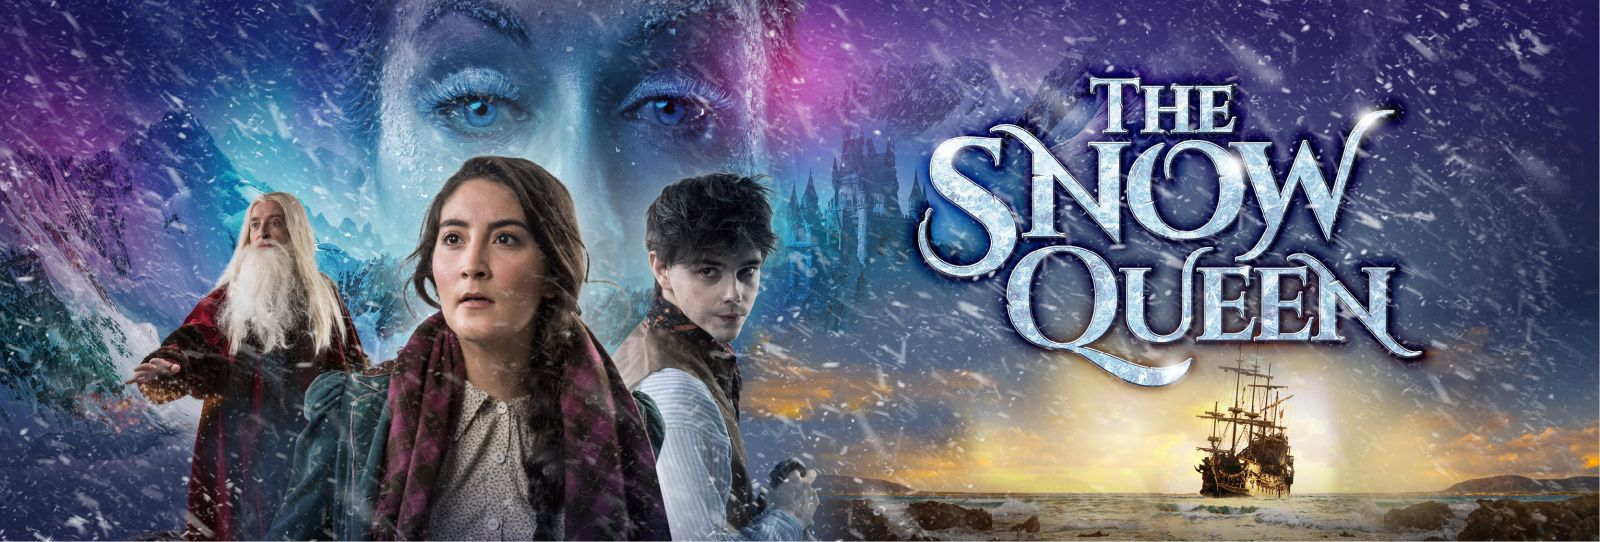 Cast announced for The Snow Queen!